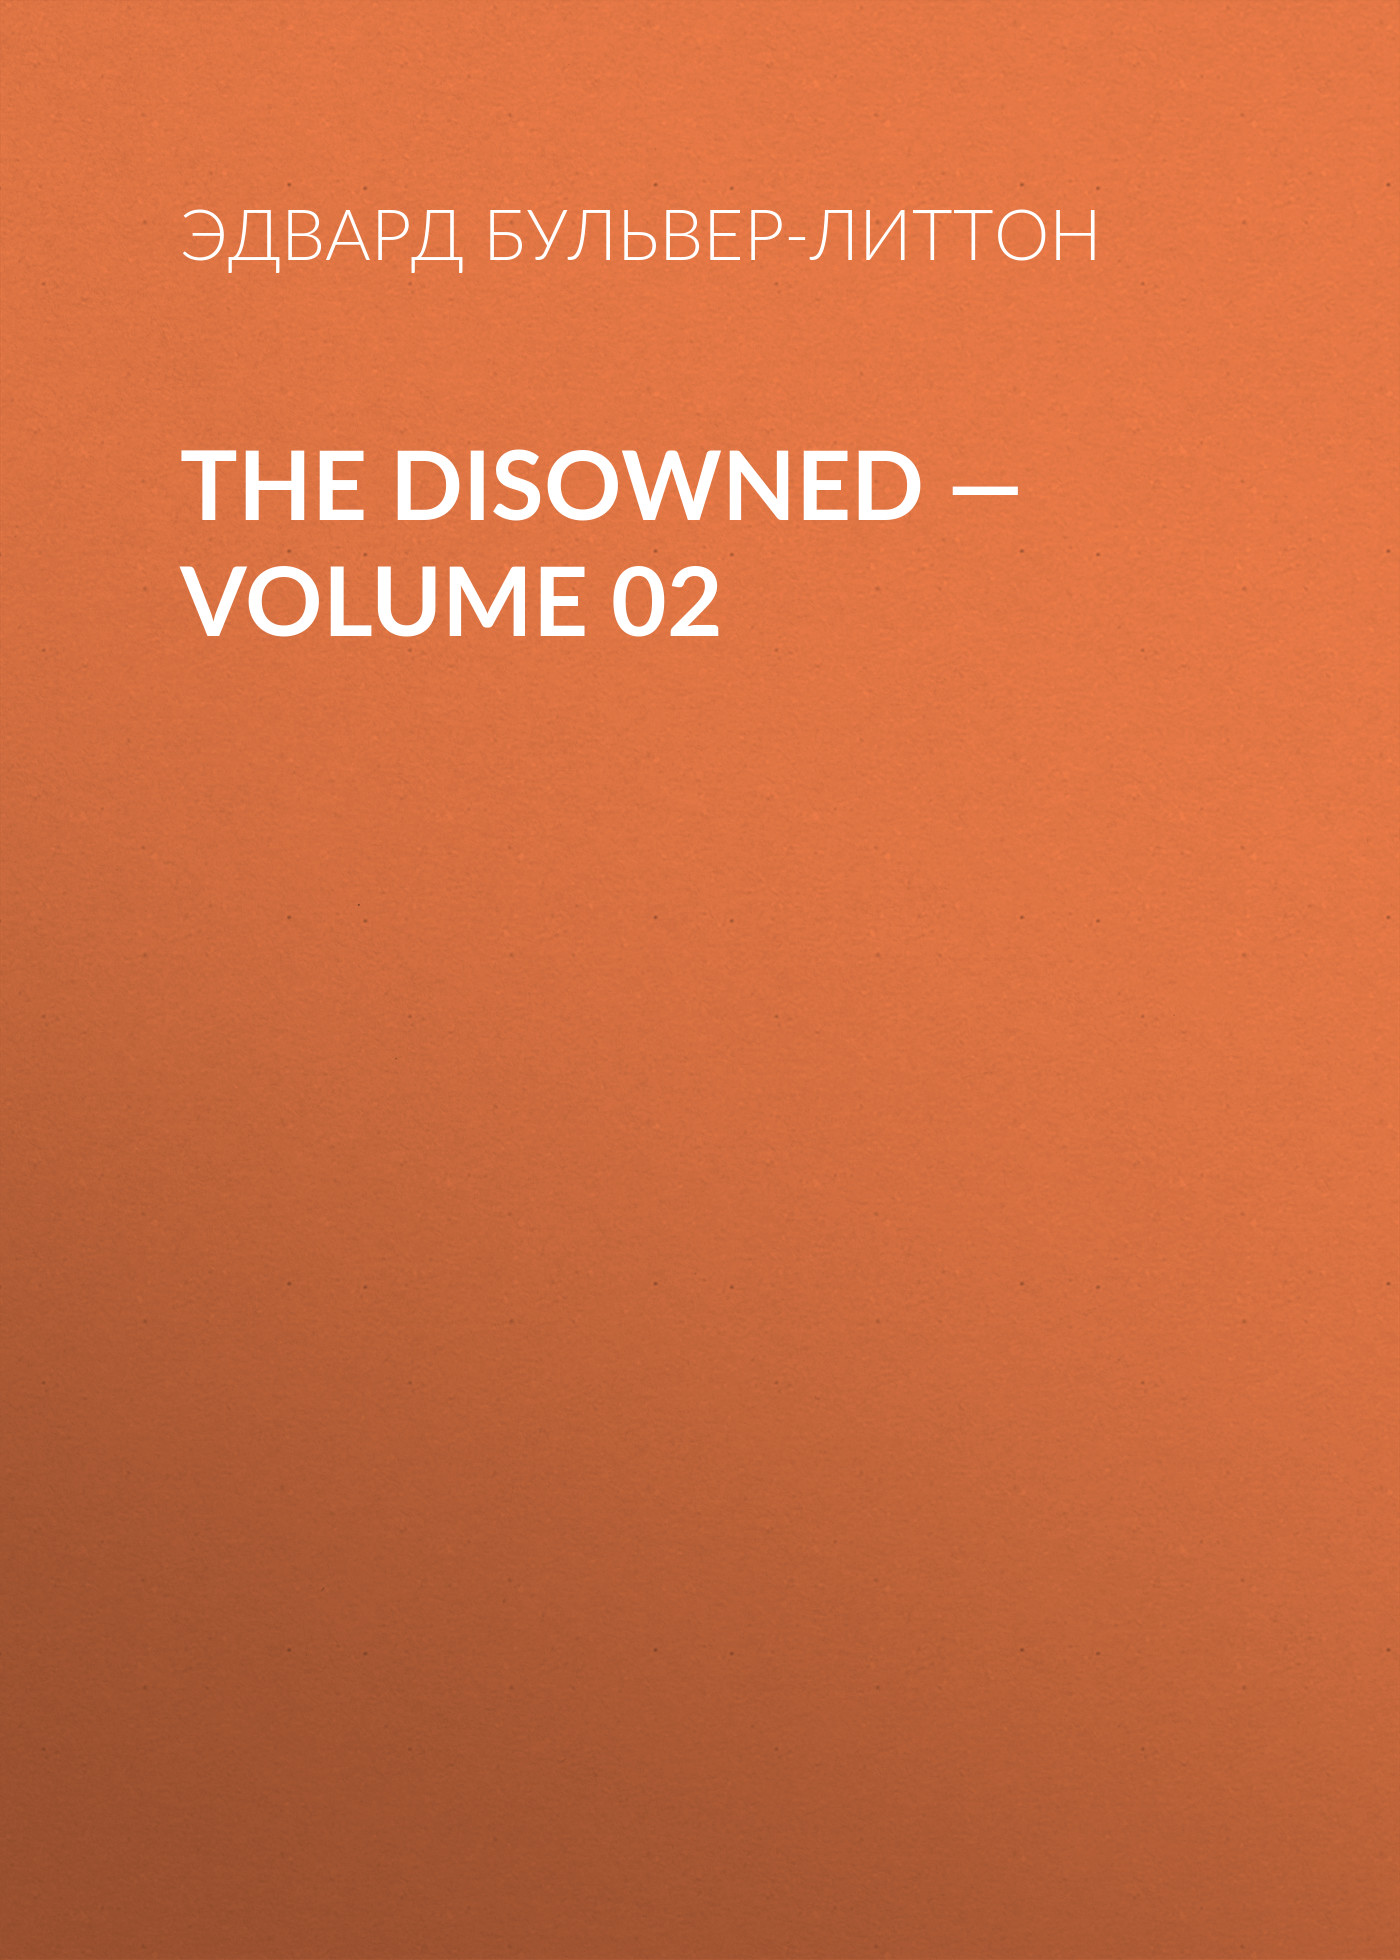 Эдвард Бульвер-Литтон The Disowned — Volume 02 эдвард бульвер литтон ernest maltravers volume 02